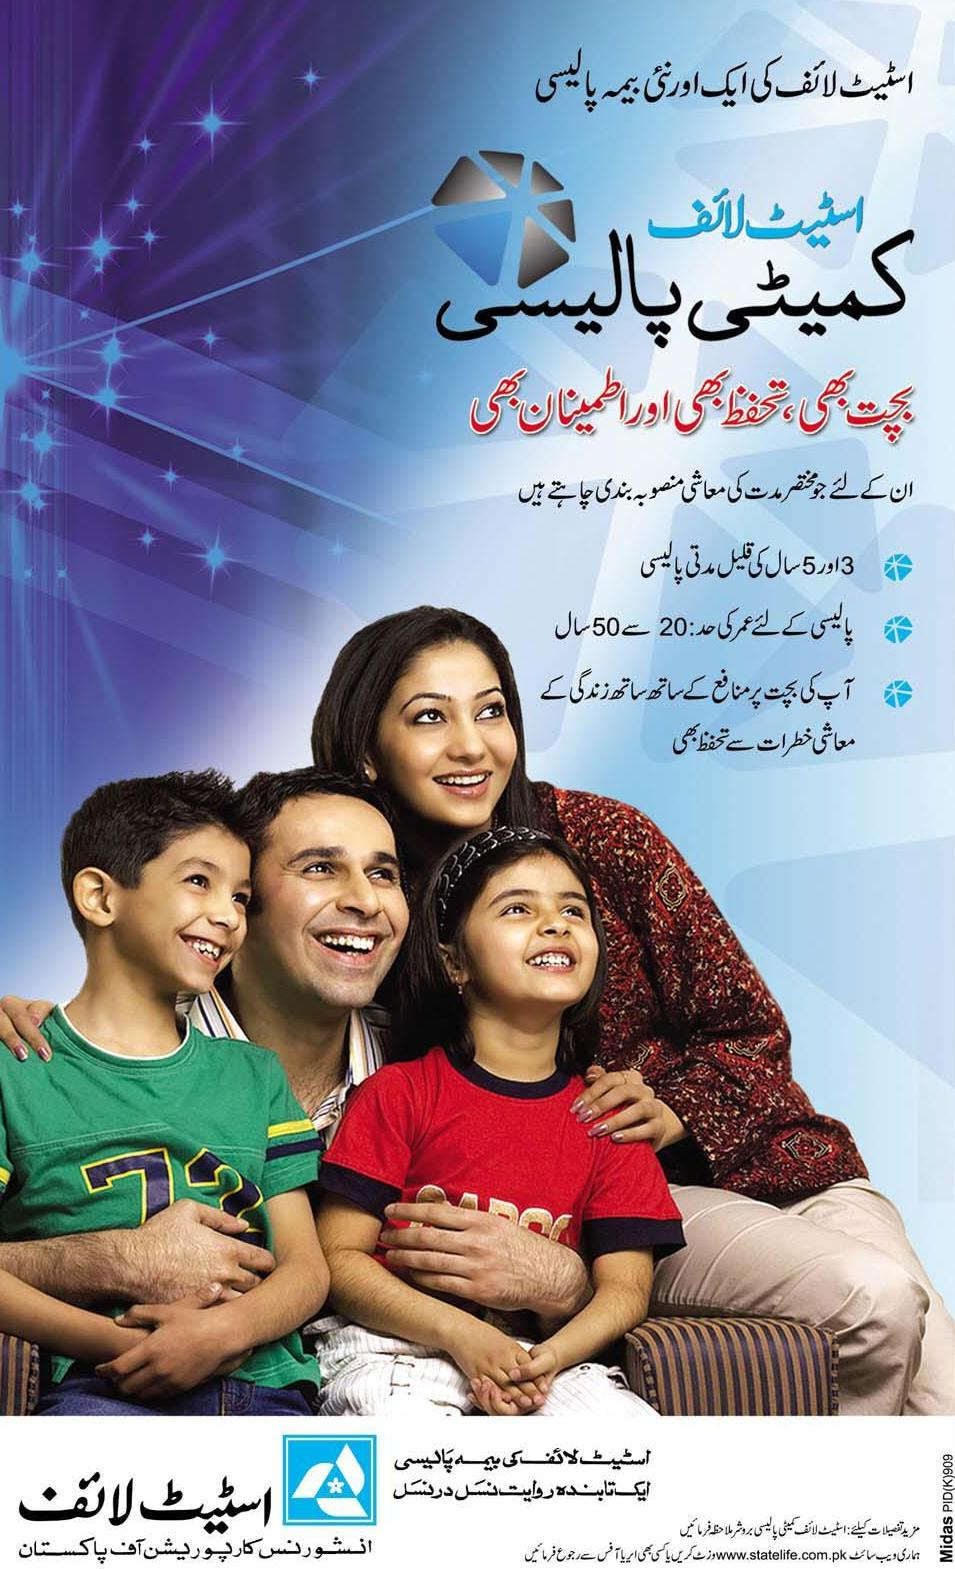 Advertising in Pakistan: State Life Insurance   Committee ...